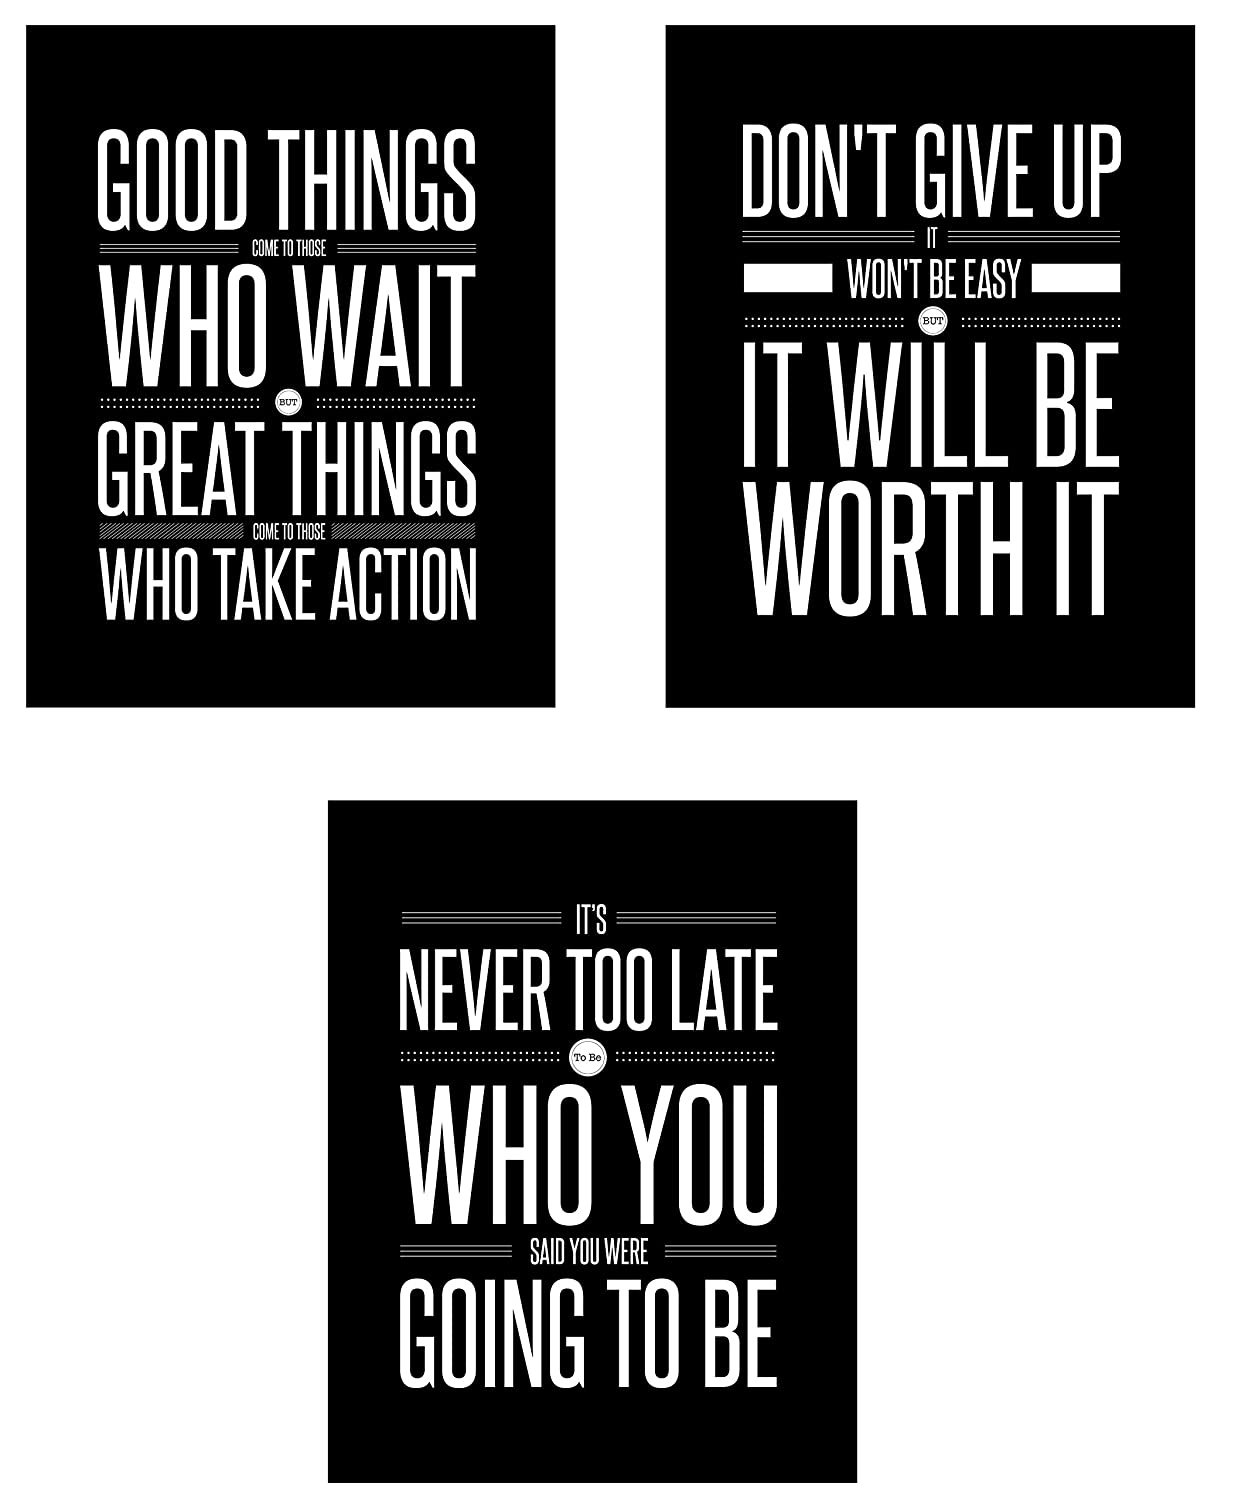 Dont give up 3 poster set motivational inspirational quote wall art posters black white typographic unframed wall home decor office classroom